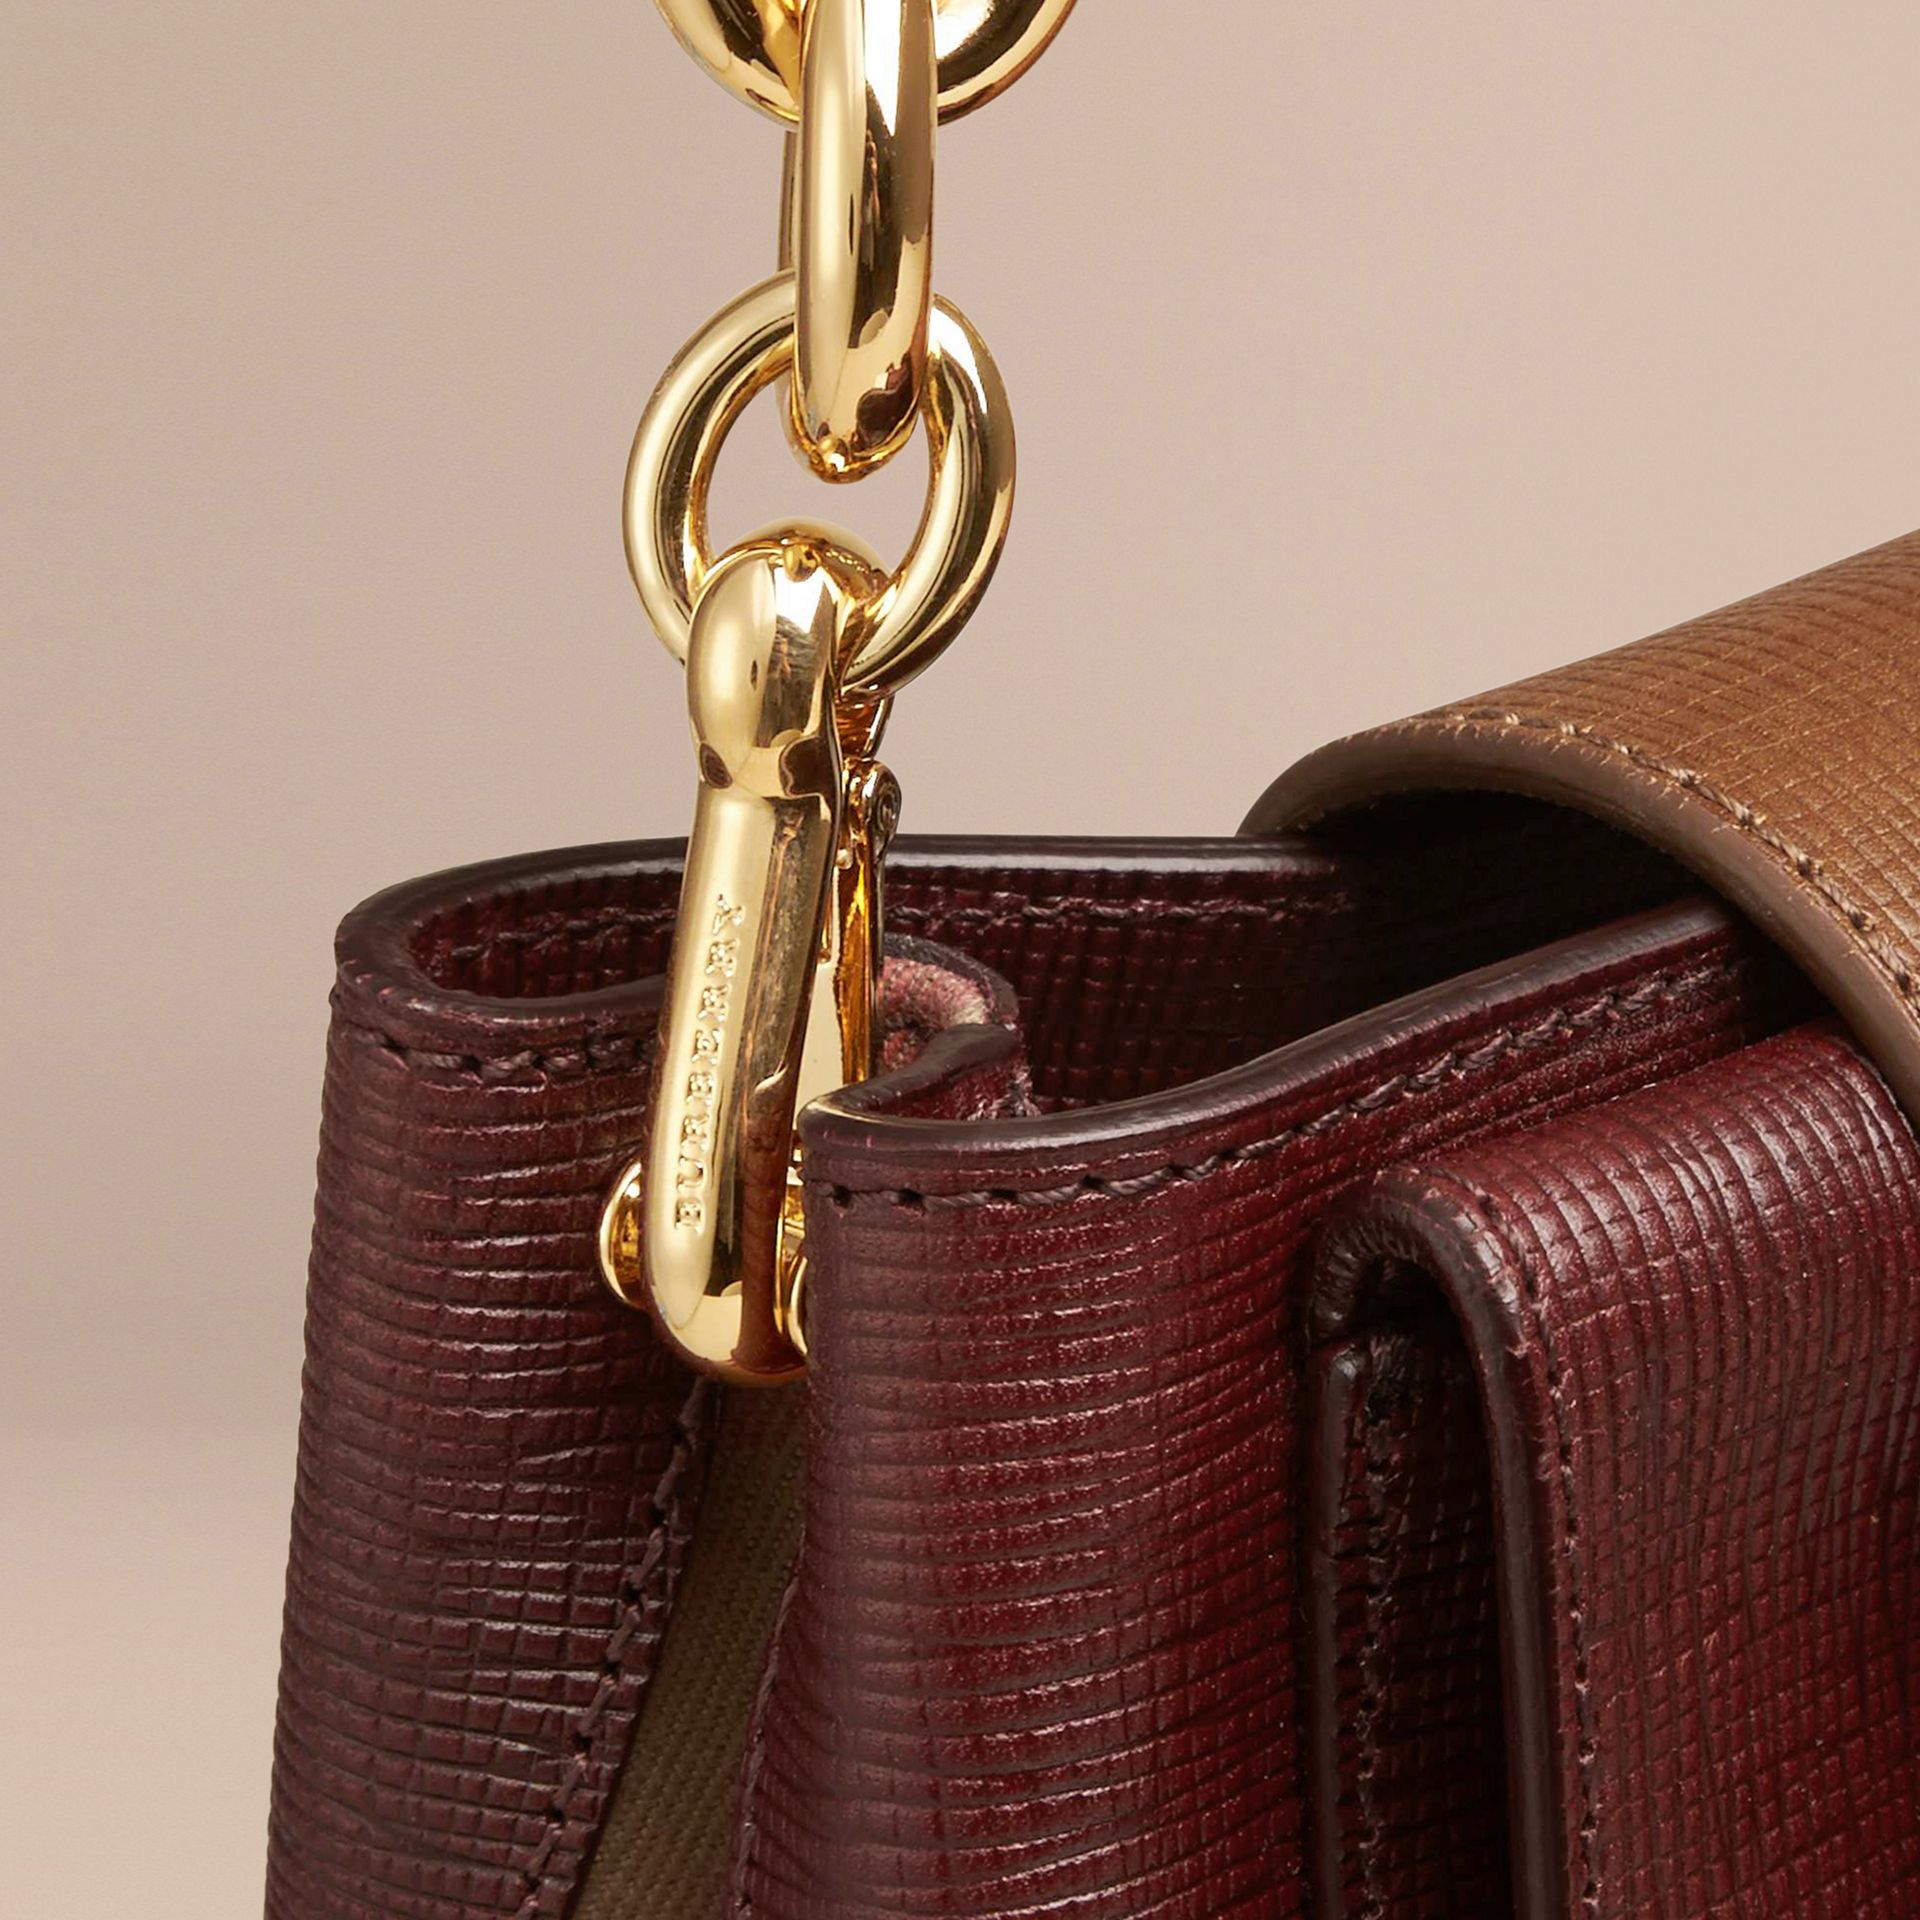 Burgundy The Small Square Buckle Bag in Leather and House Check Burgundy - gallery image 6